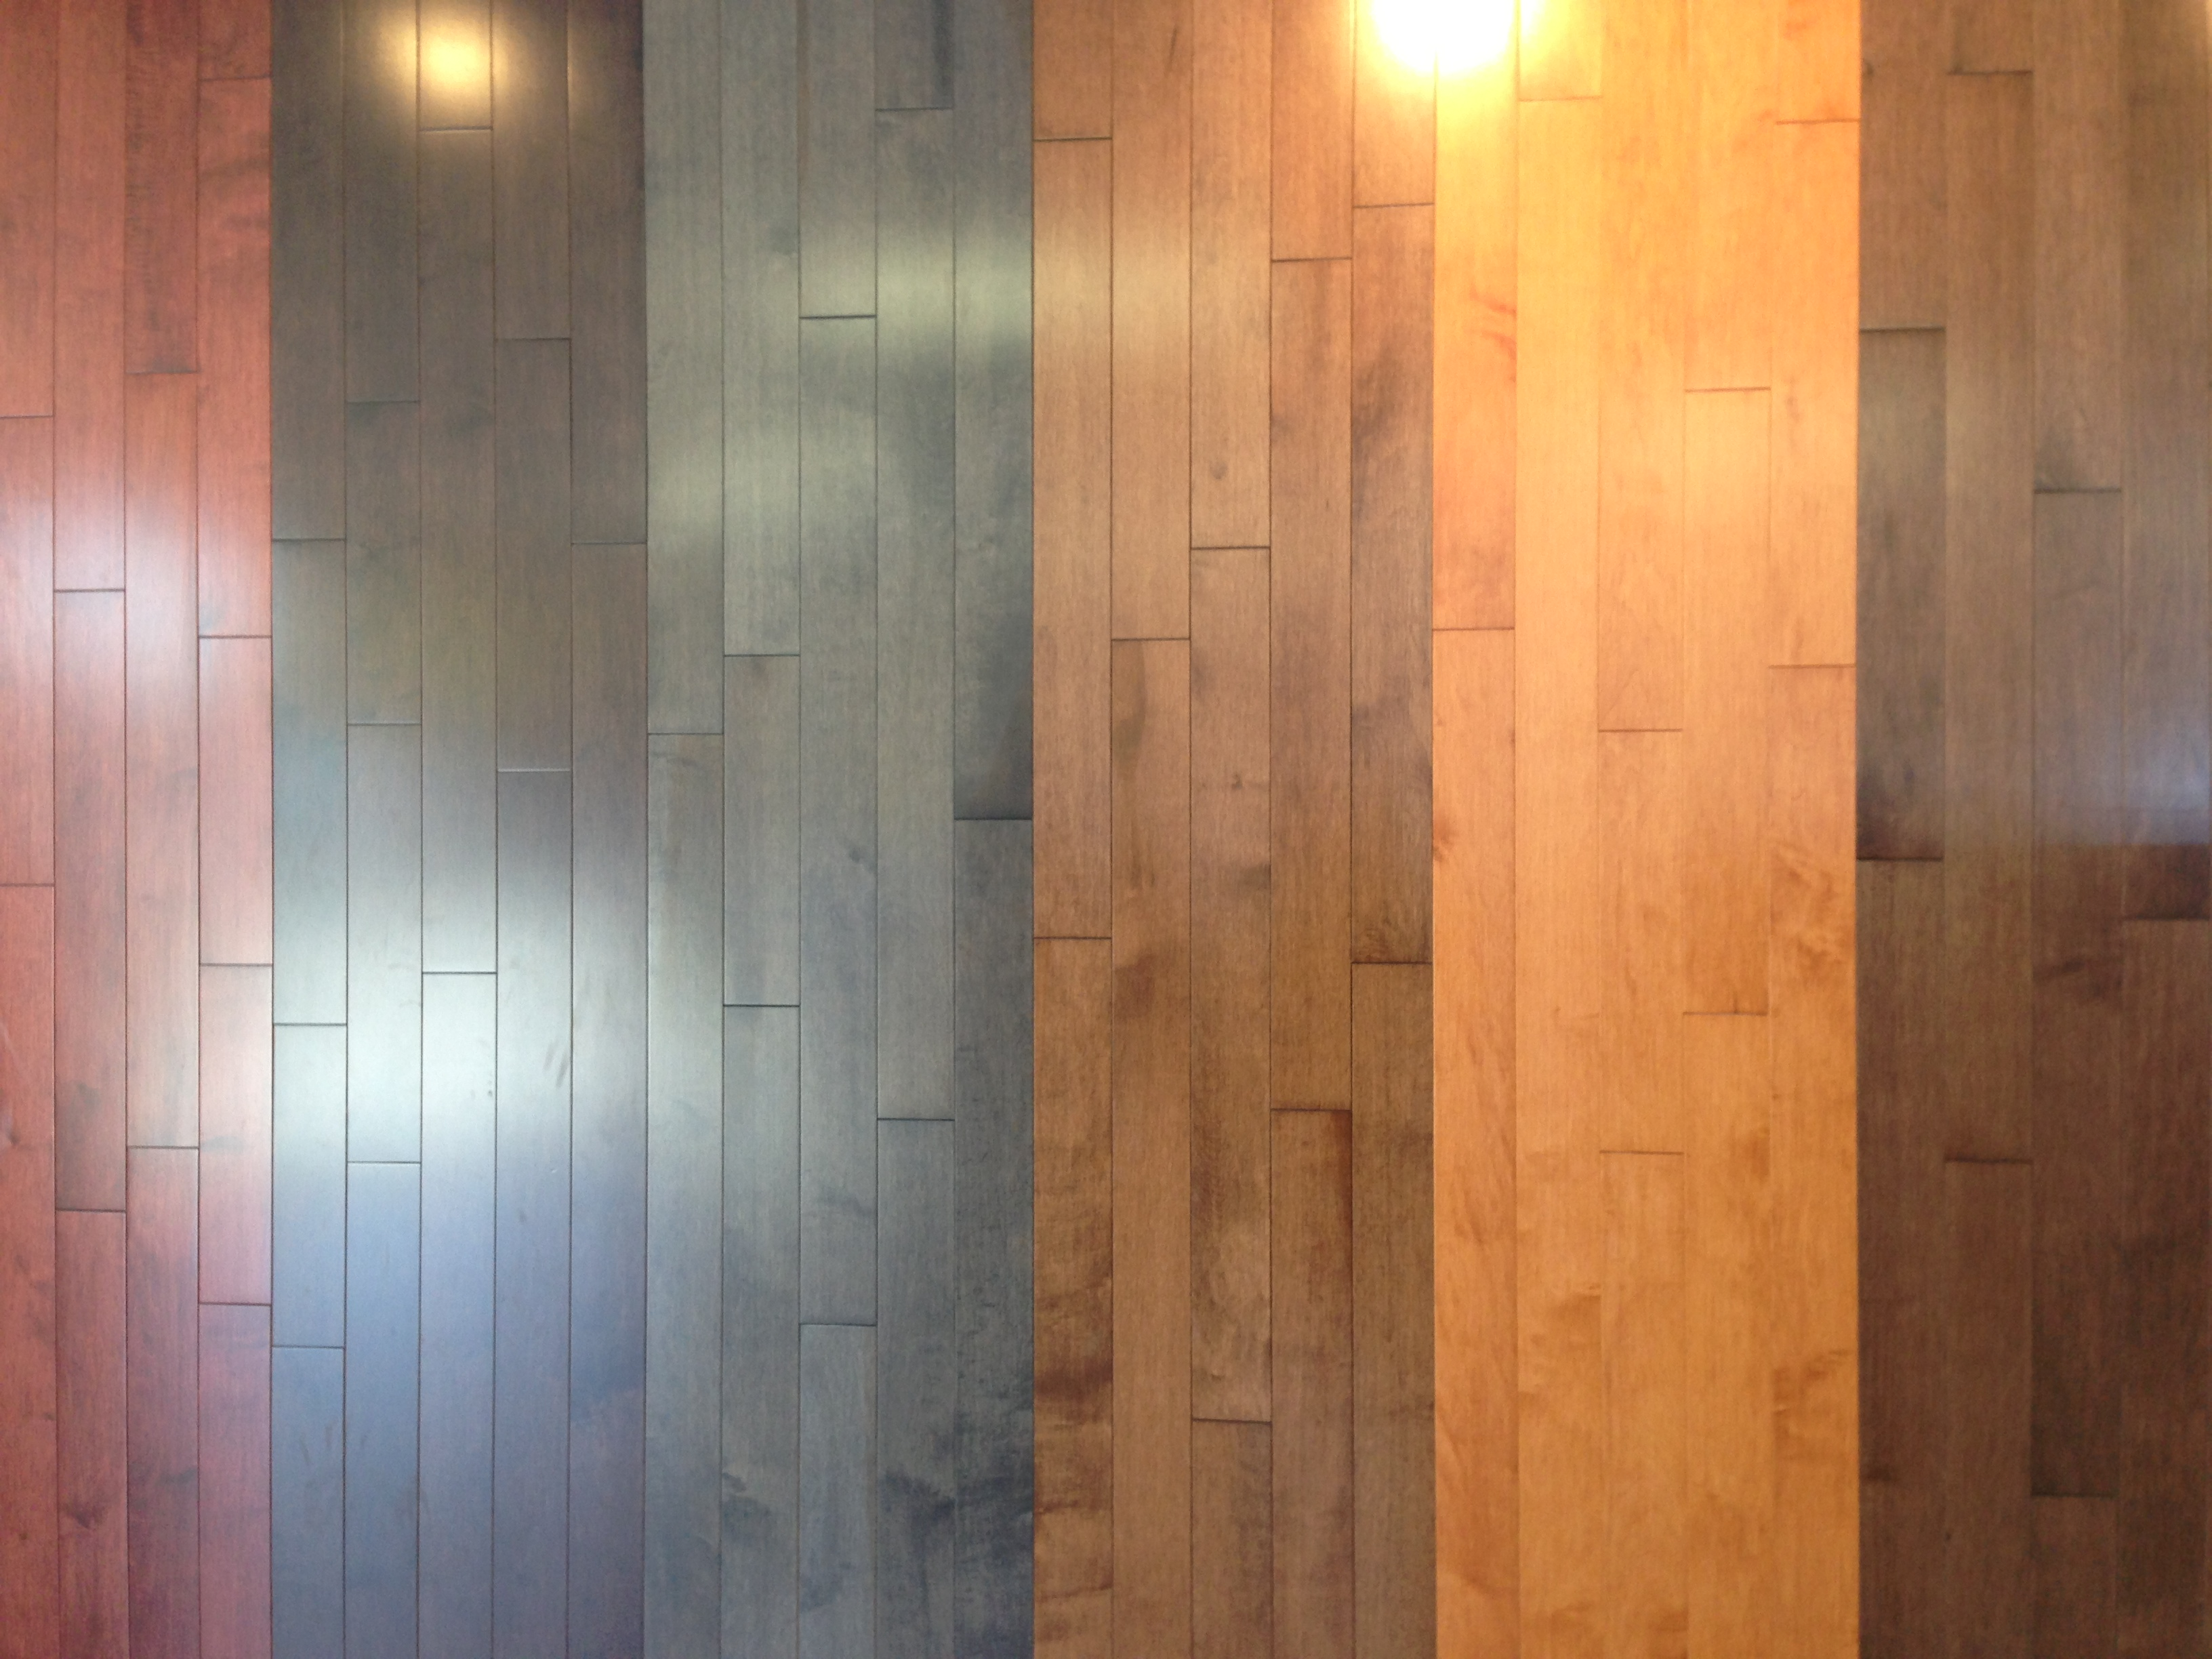 ... to know a Average Hardwood Floor Installation Cost in quality hardwood